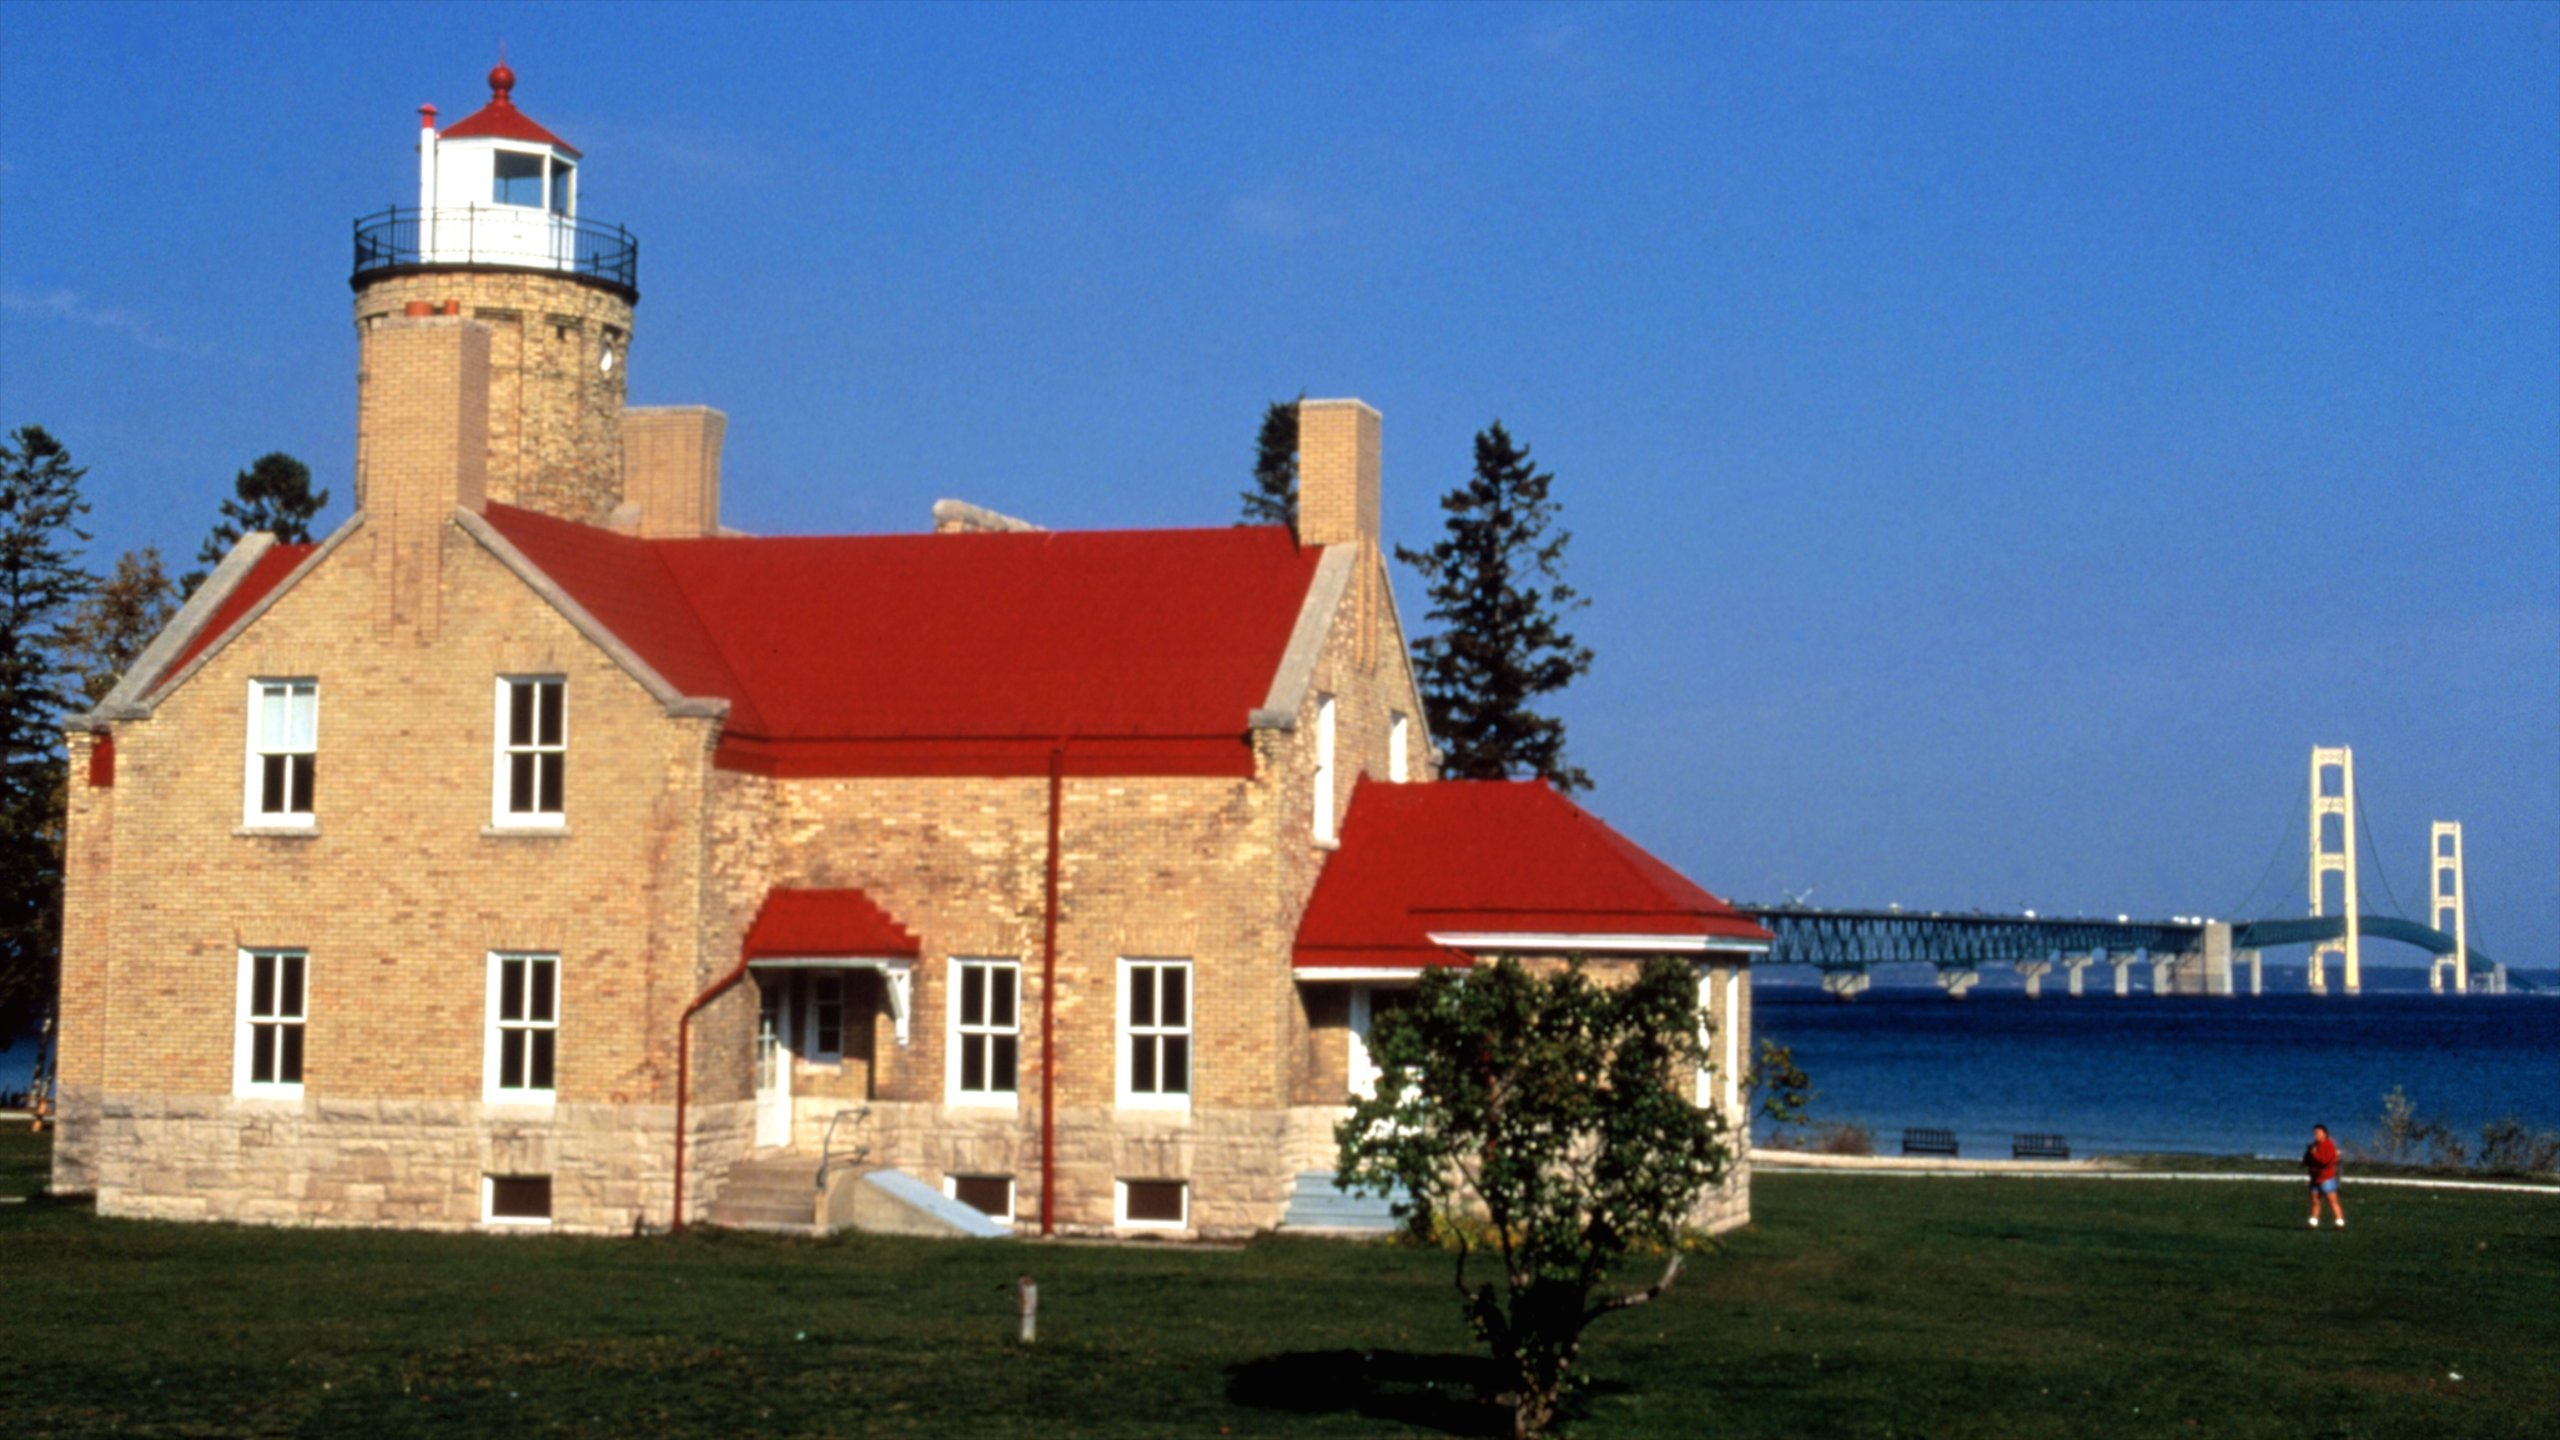 The 10 Best Hotels in Mackinaw City, Michigan from $55 for ... Mackinaw City Hotel Map on virginia hotel map, muskegon hotel map, rochester hotel map, des moines hotel map, new york hotel map, maine hotel map, greenville hotel map, holland hotel map, illinois hotel map, grand rapids hotel map, california hotel map, new haven hotel map, nashville hotel map, jacksonville hotel map, ann arbor hotel map, portland hotel map, albany hotel map, wasaga beach hotel map, kalamazoo hotel map, frankenmuth hotel map,